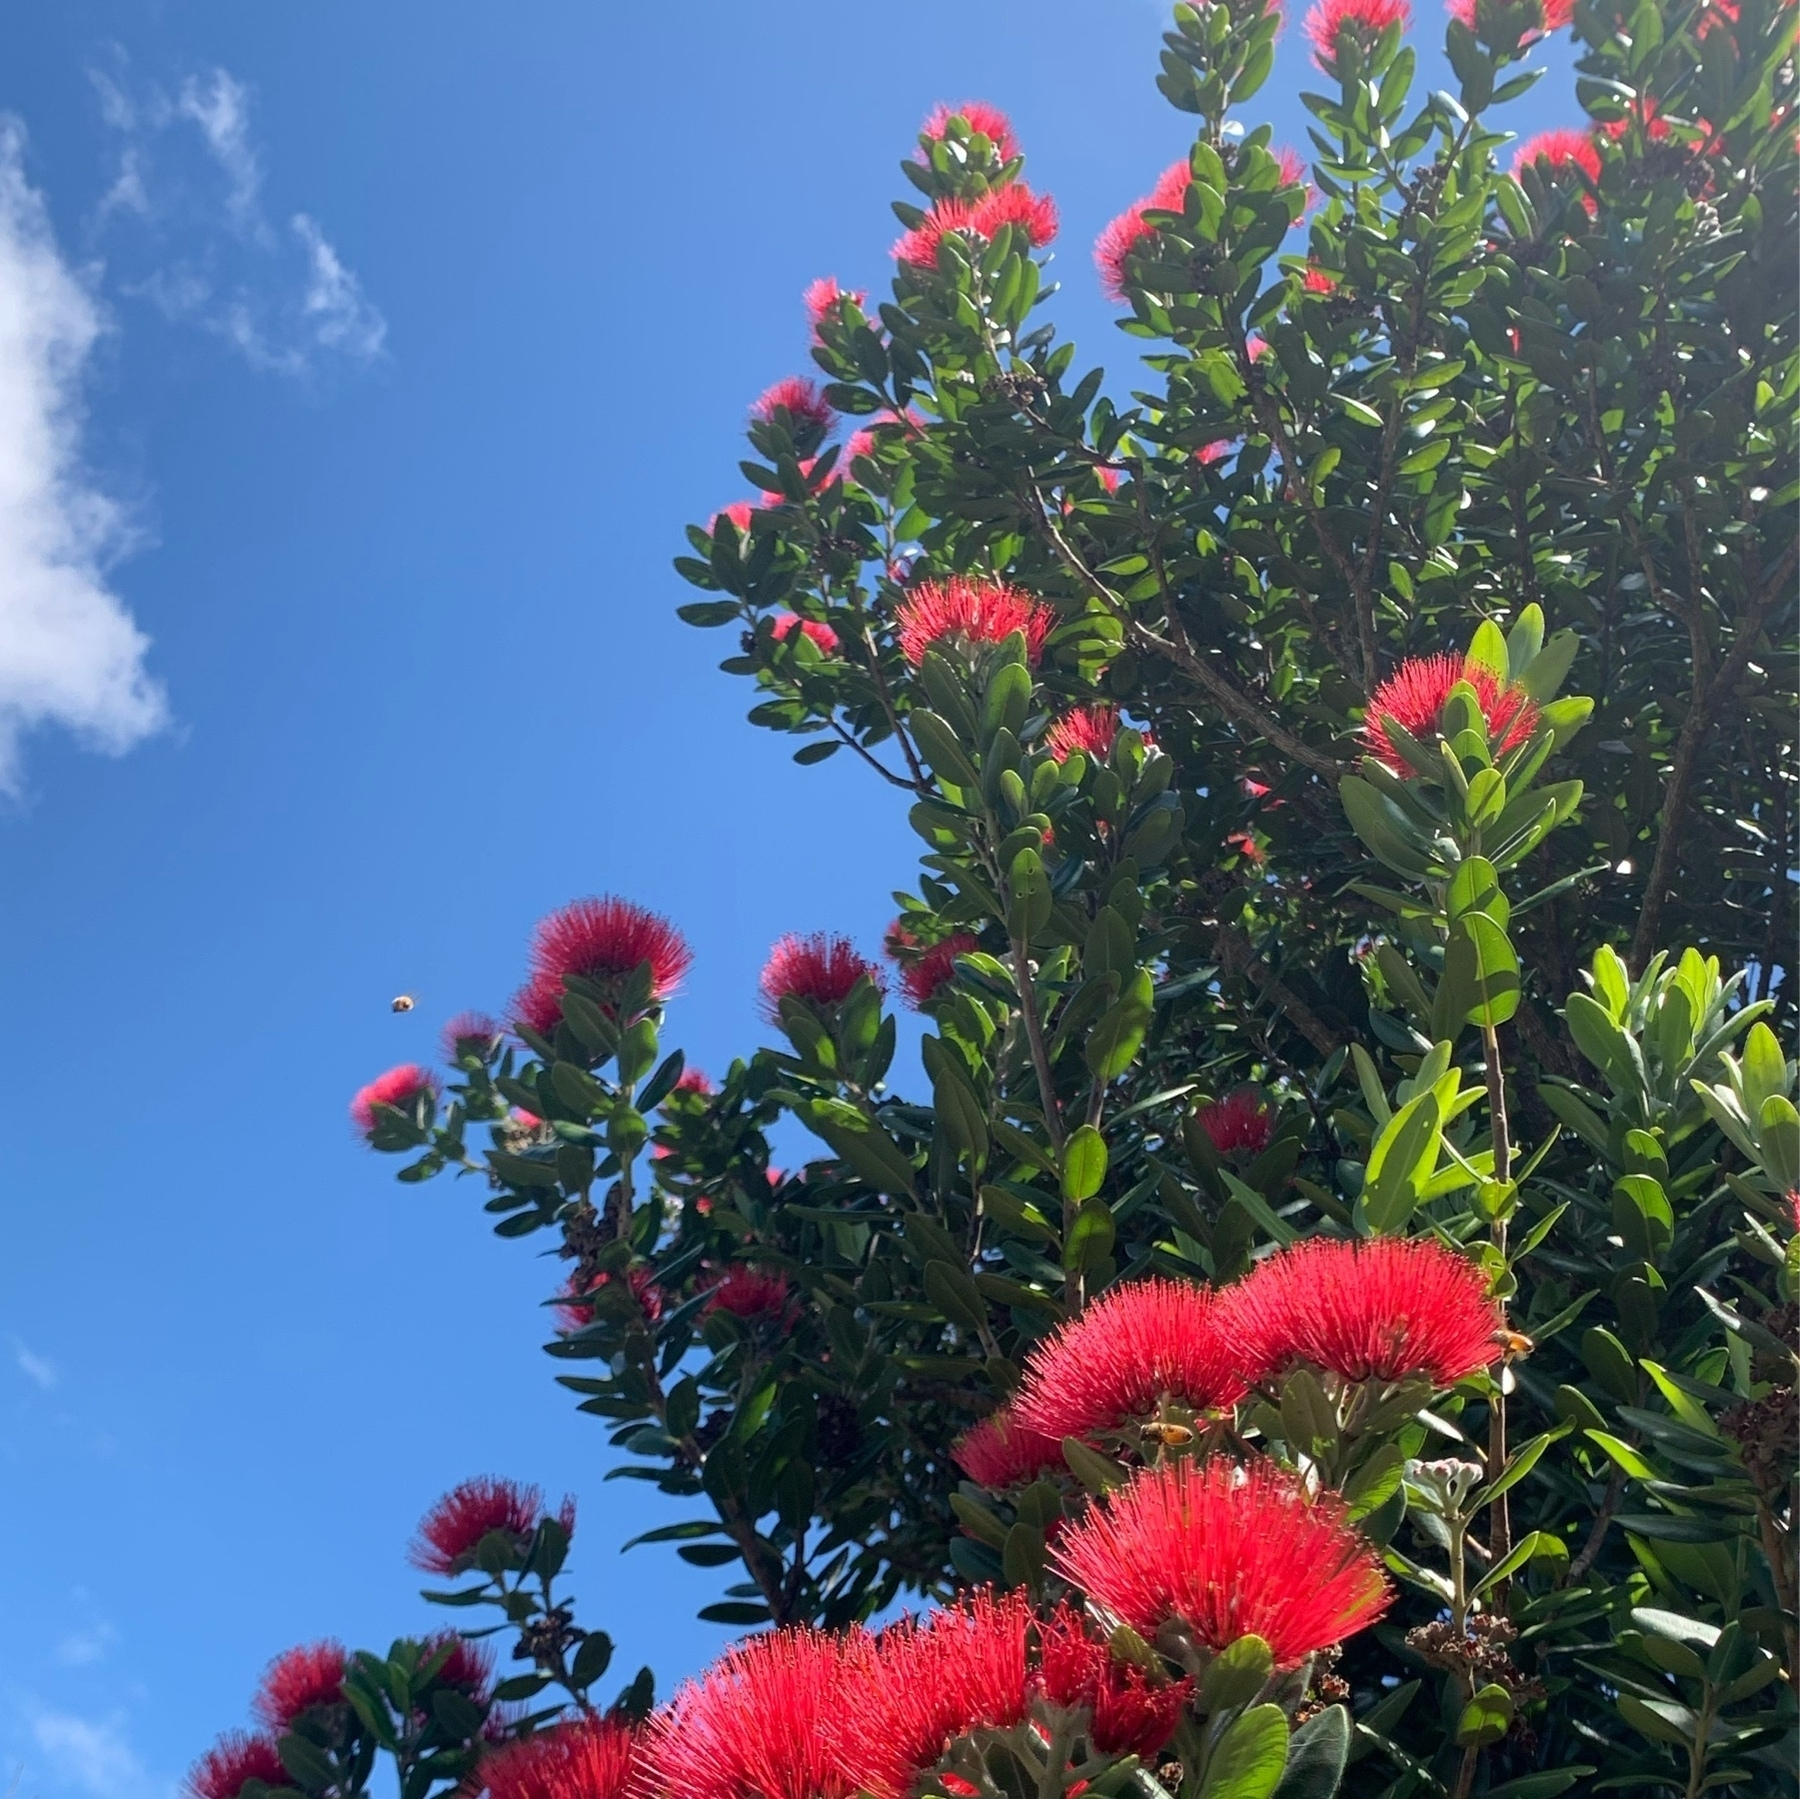 Blue sky in the background, red and green pohutukawa in the foreground